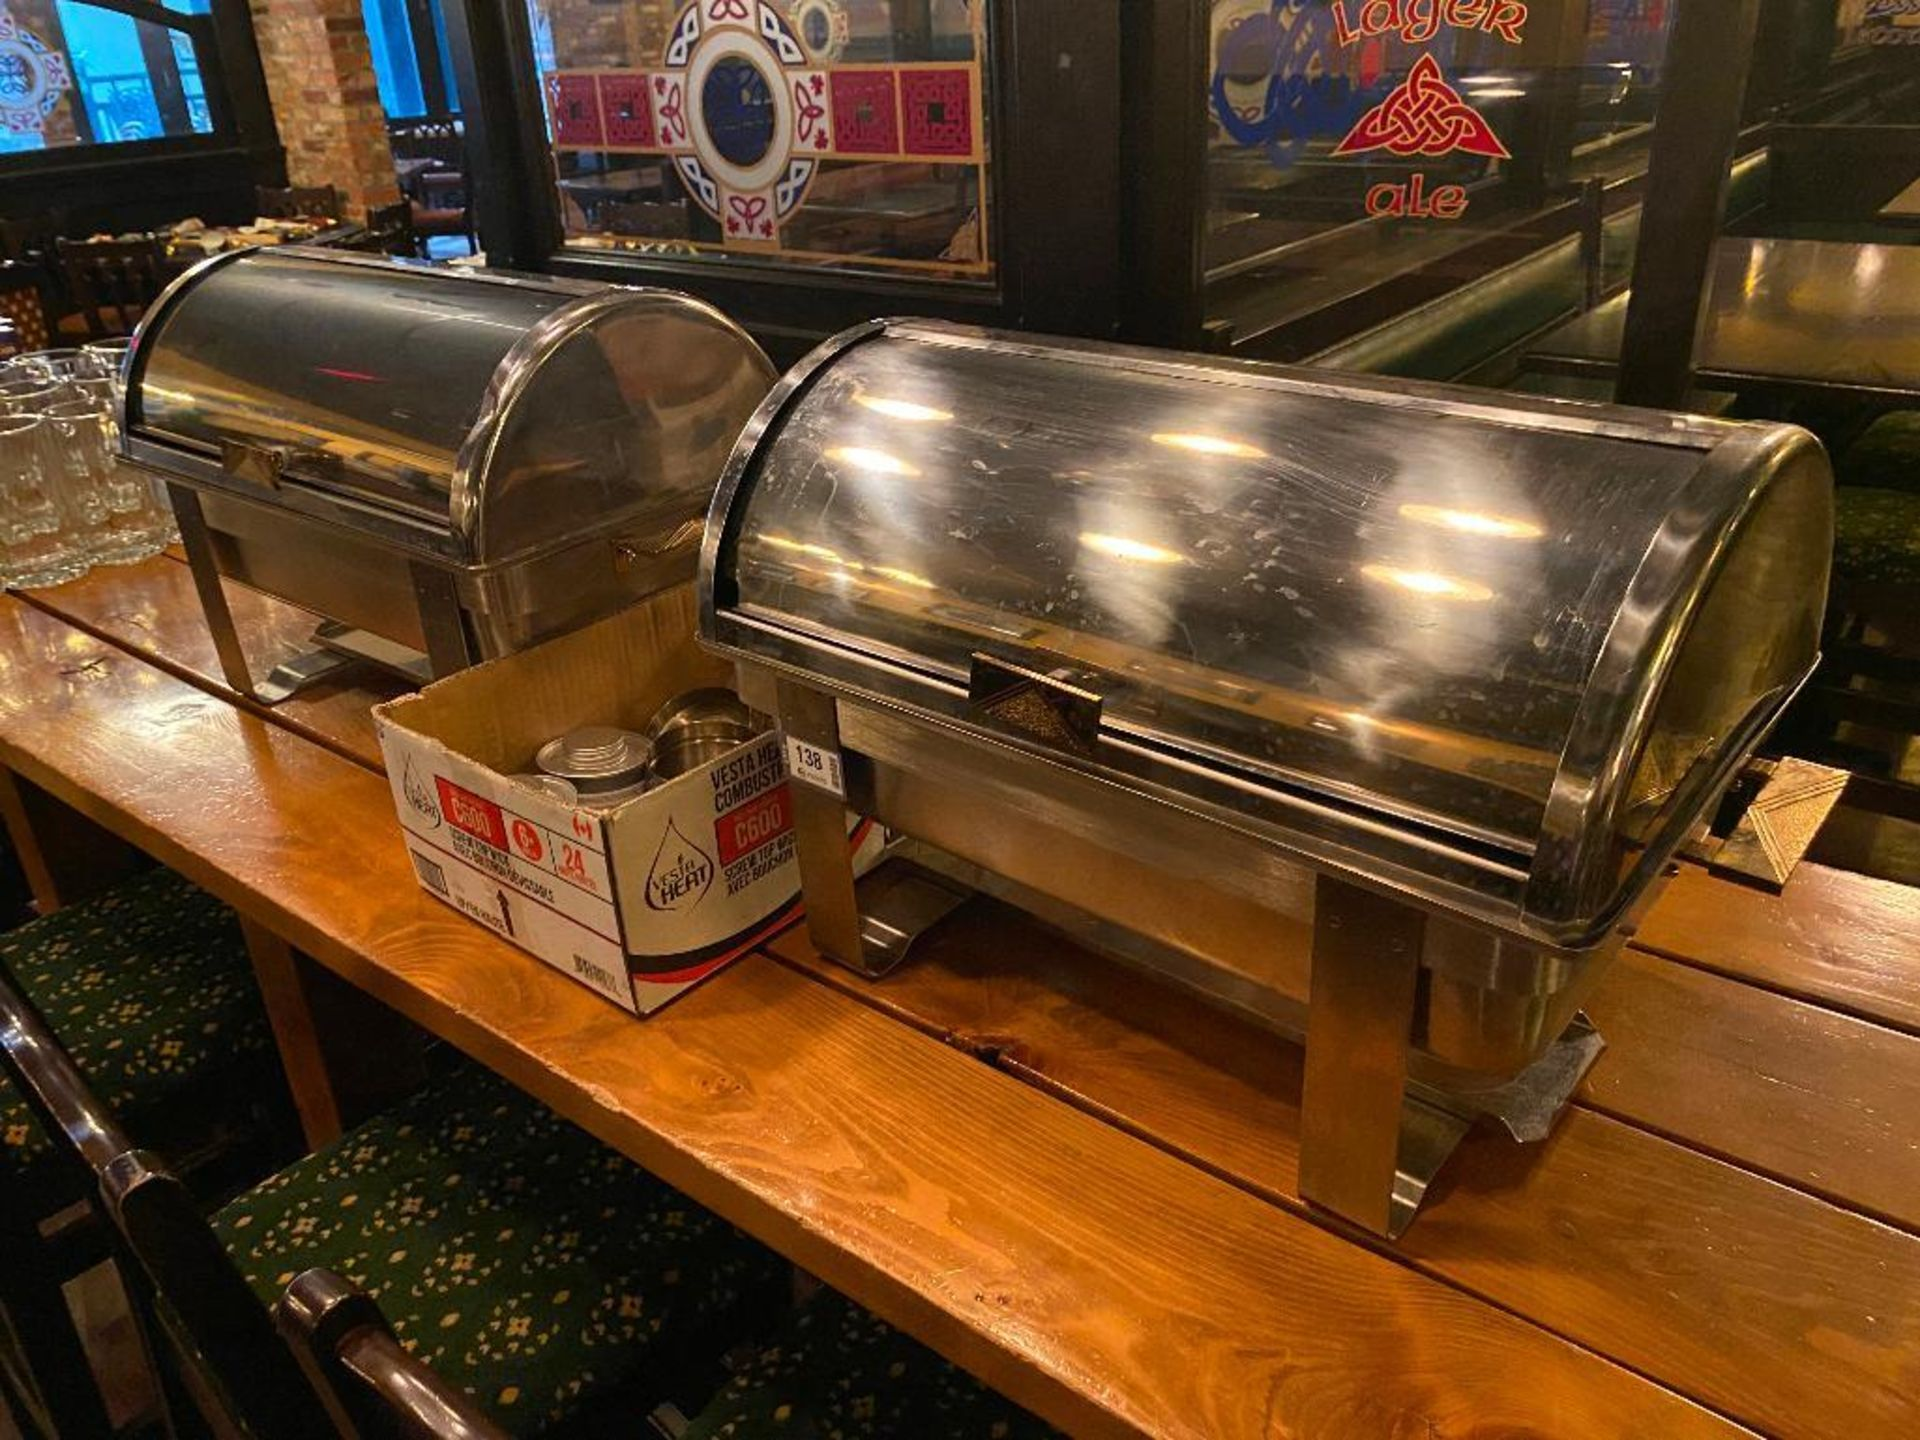 LOT OF (2) STAINLESS STEEL CHAFERS WITH FUEL - Image 4 of 4